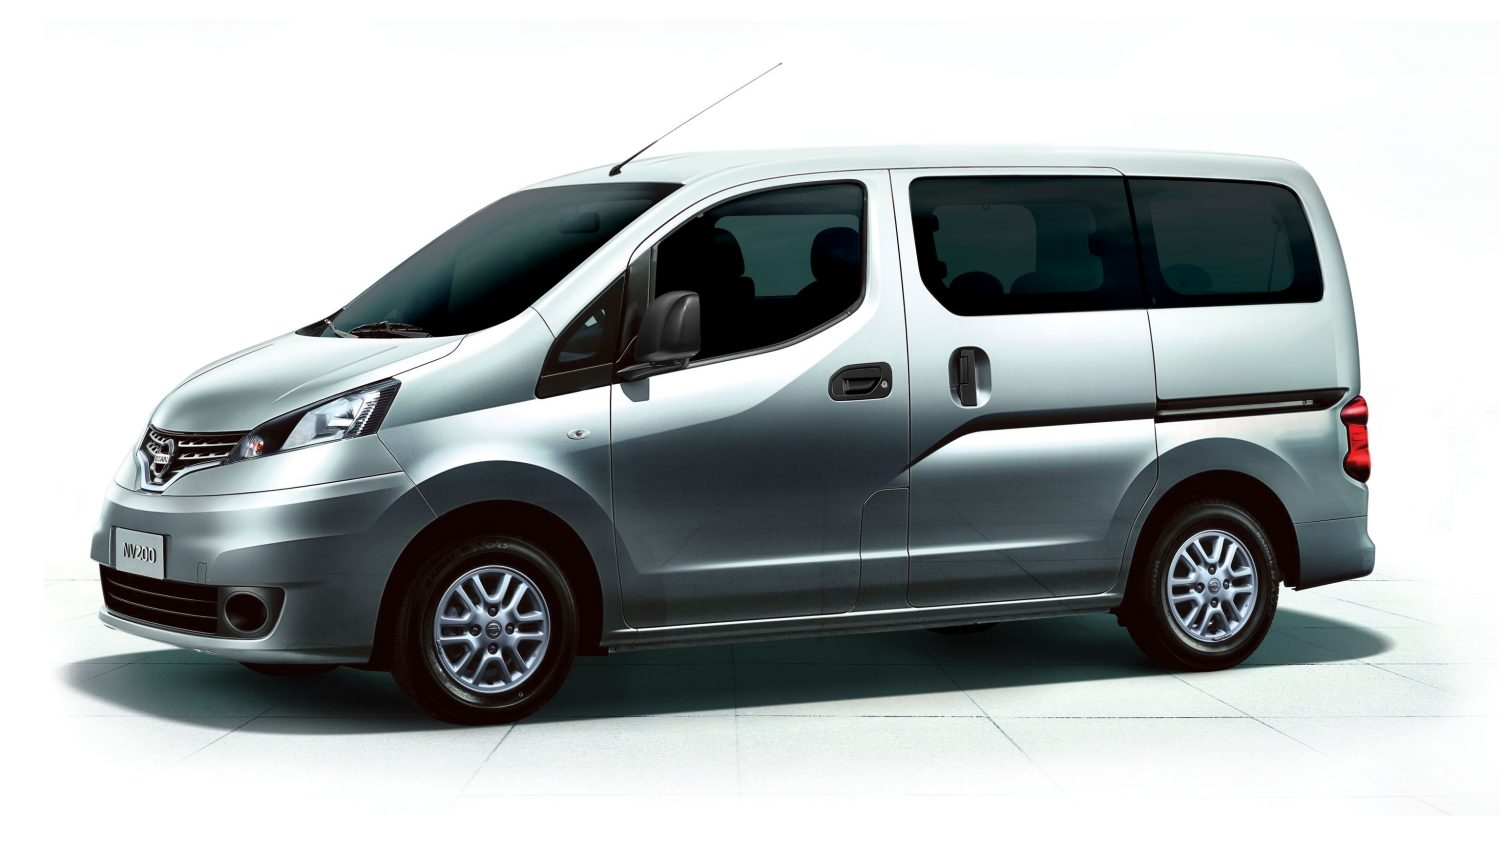 Nissan Nv200 Nissan South Africa